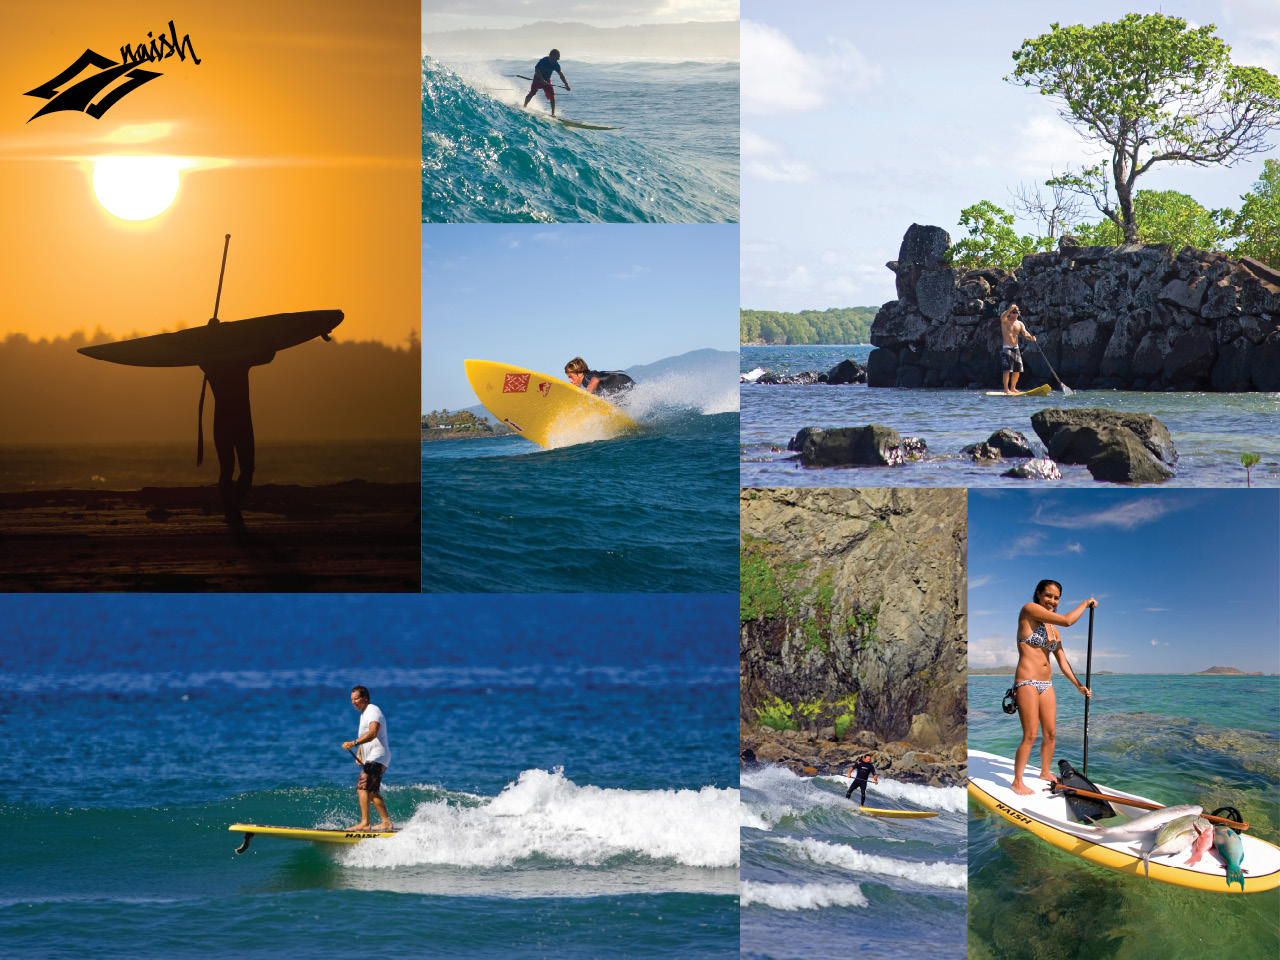 sup surfing wallpaper - photo #1